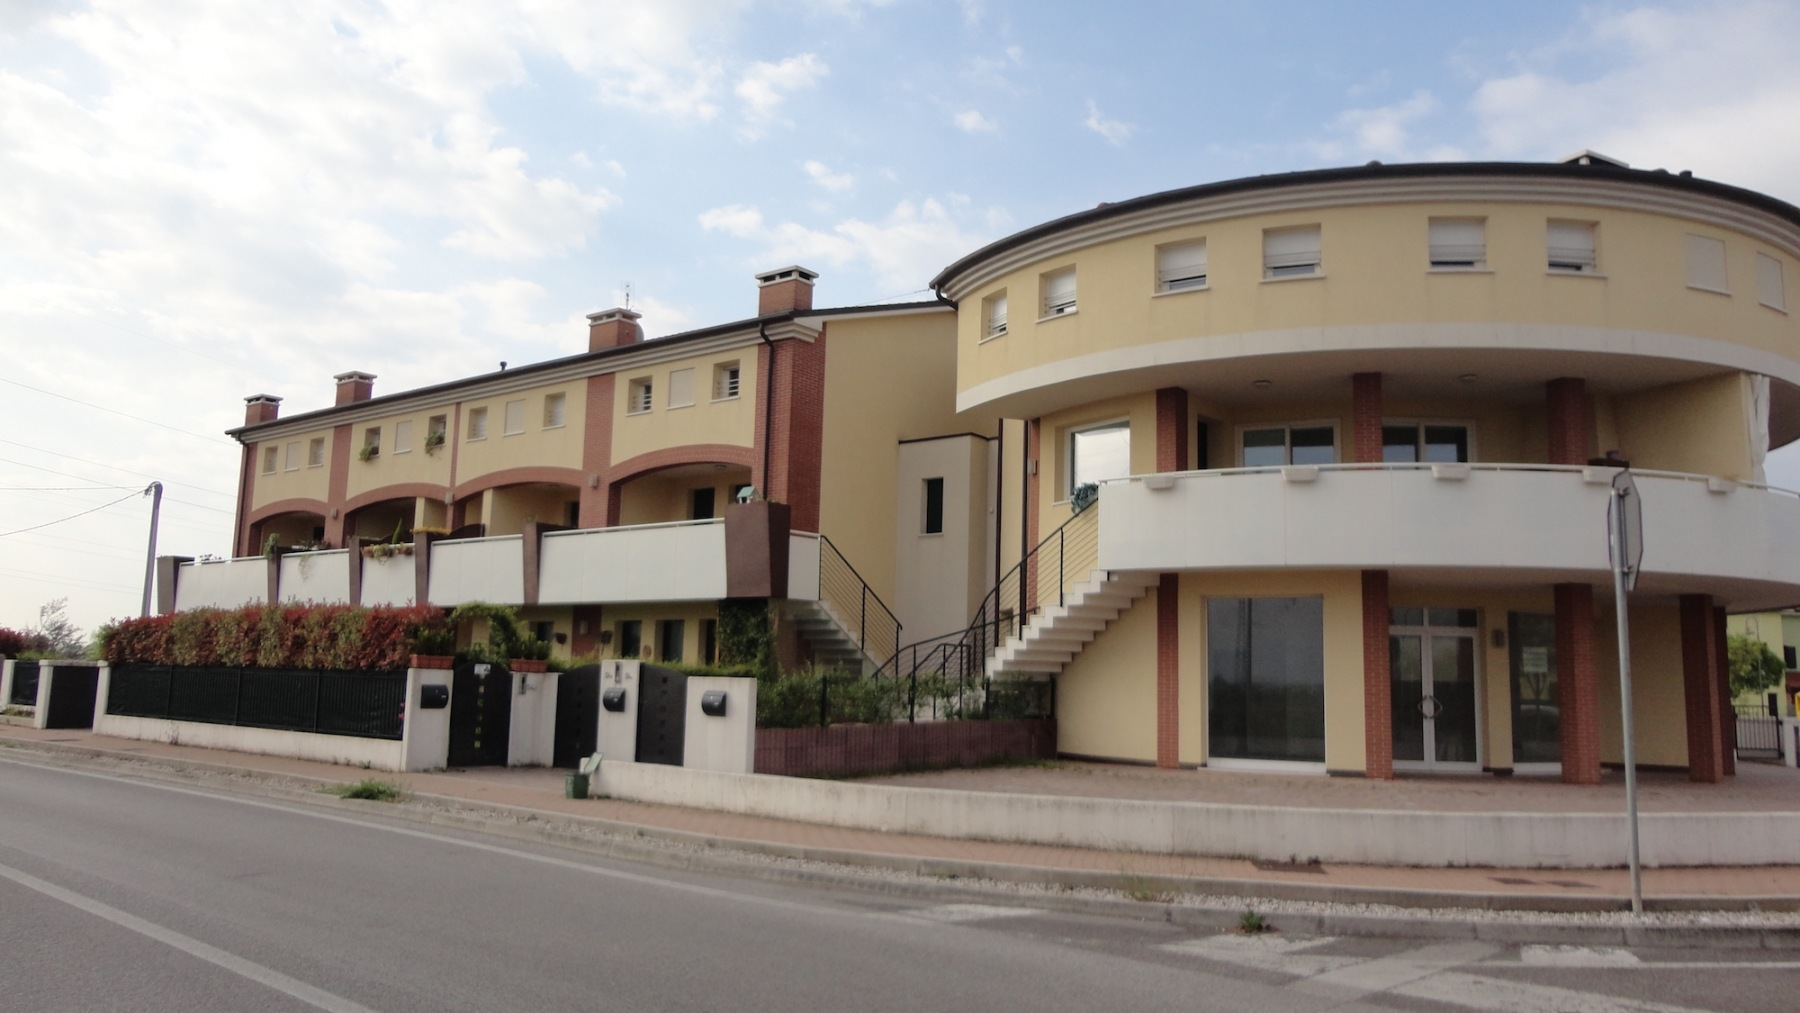 residence-angolo-costabissara-vicenza-6